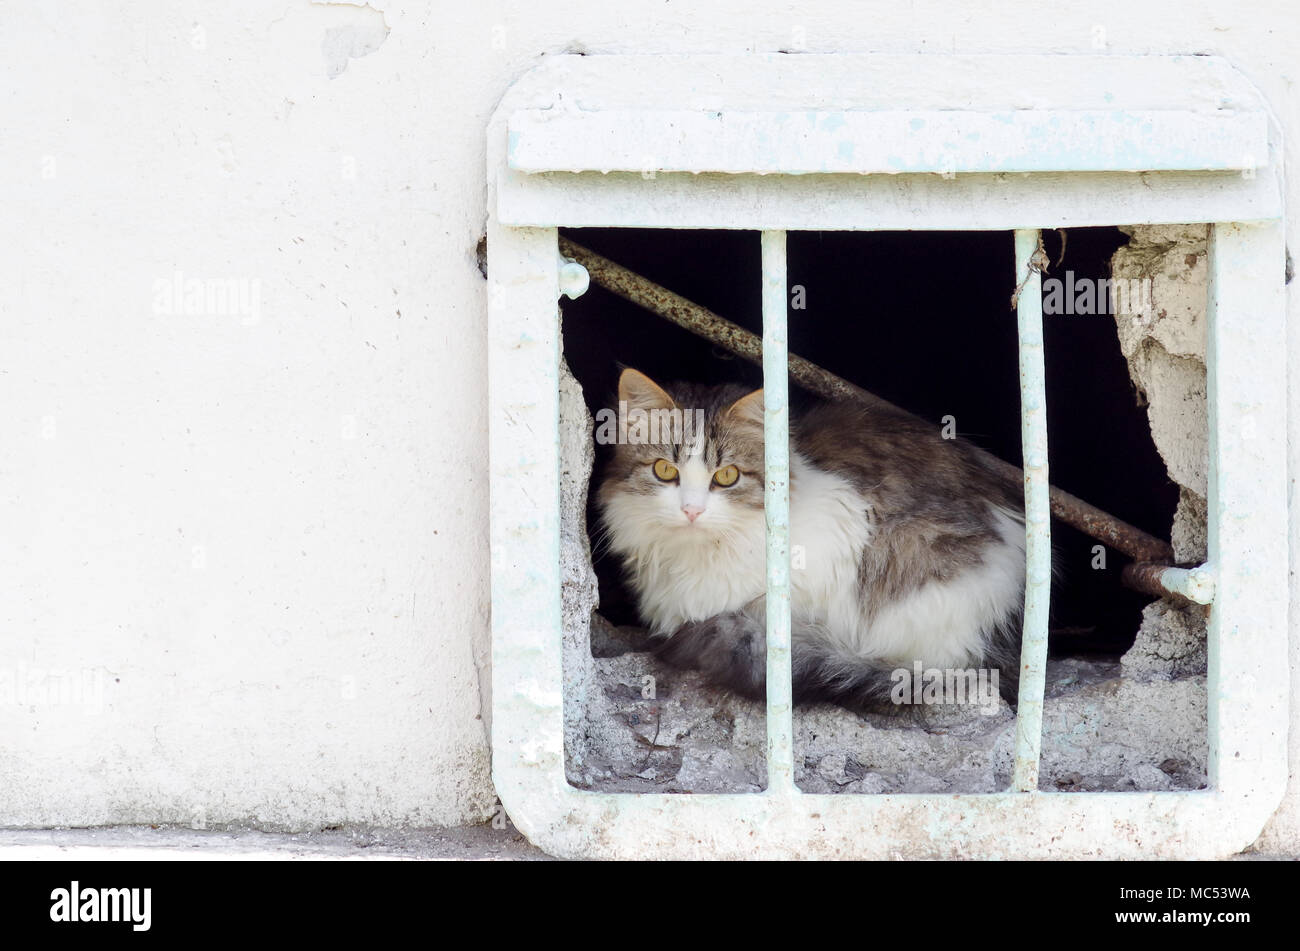 Homeless cat from the window of the basement observes the street - Stock Image